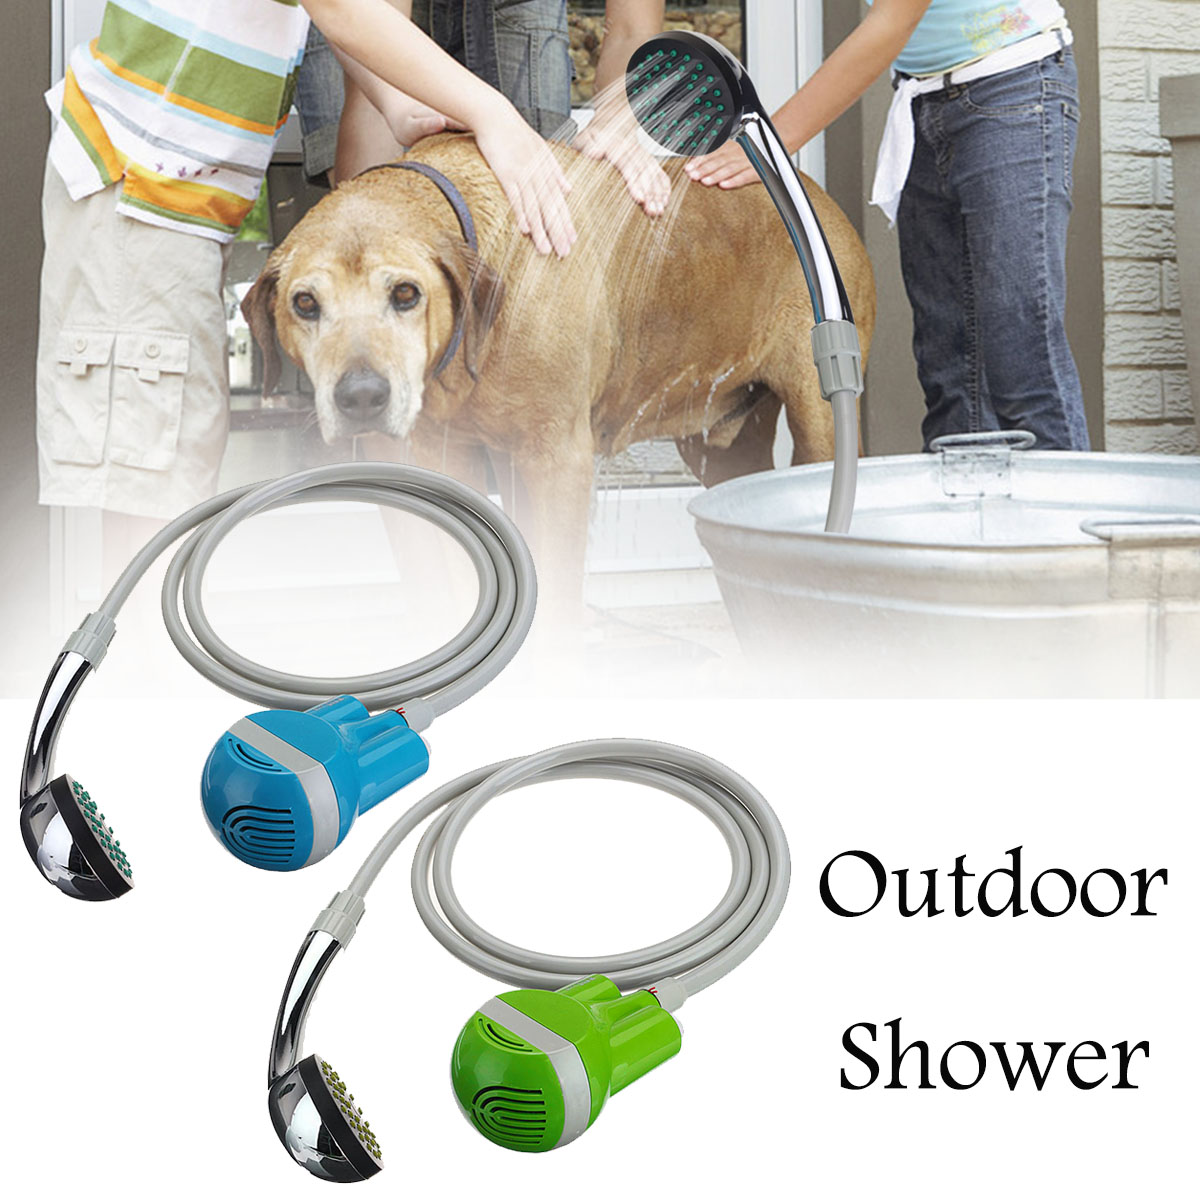 Portable Outdoor Camping Car Washer Shower Hiking Travel Handheld Battery Powered USB Rechargeable Home Bathroom Water Shower(China)